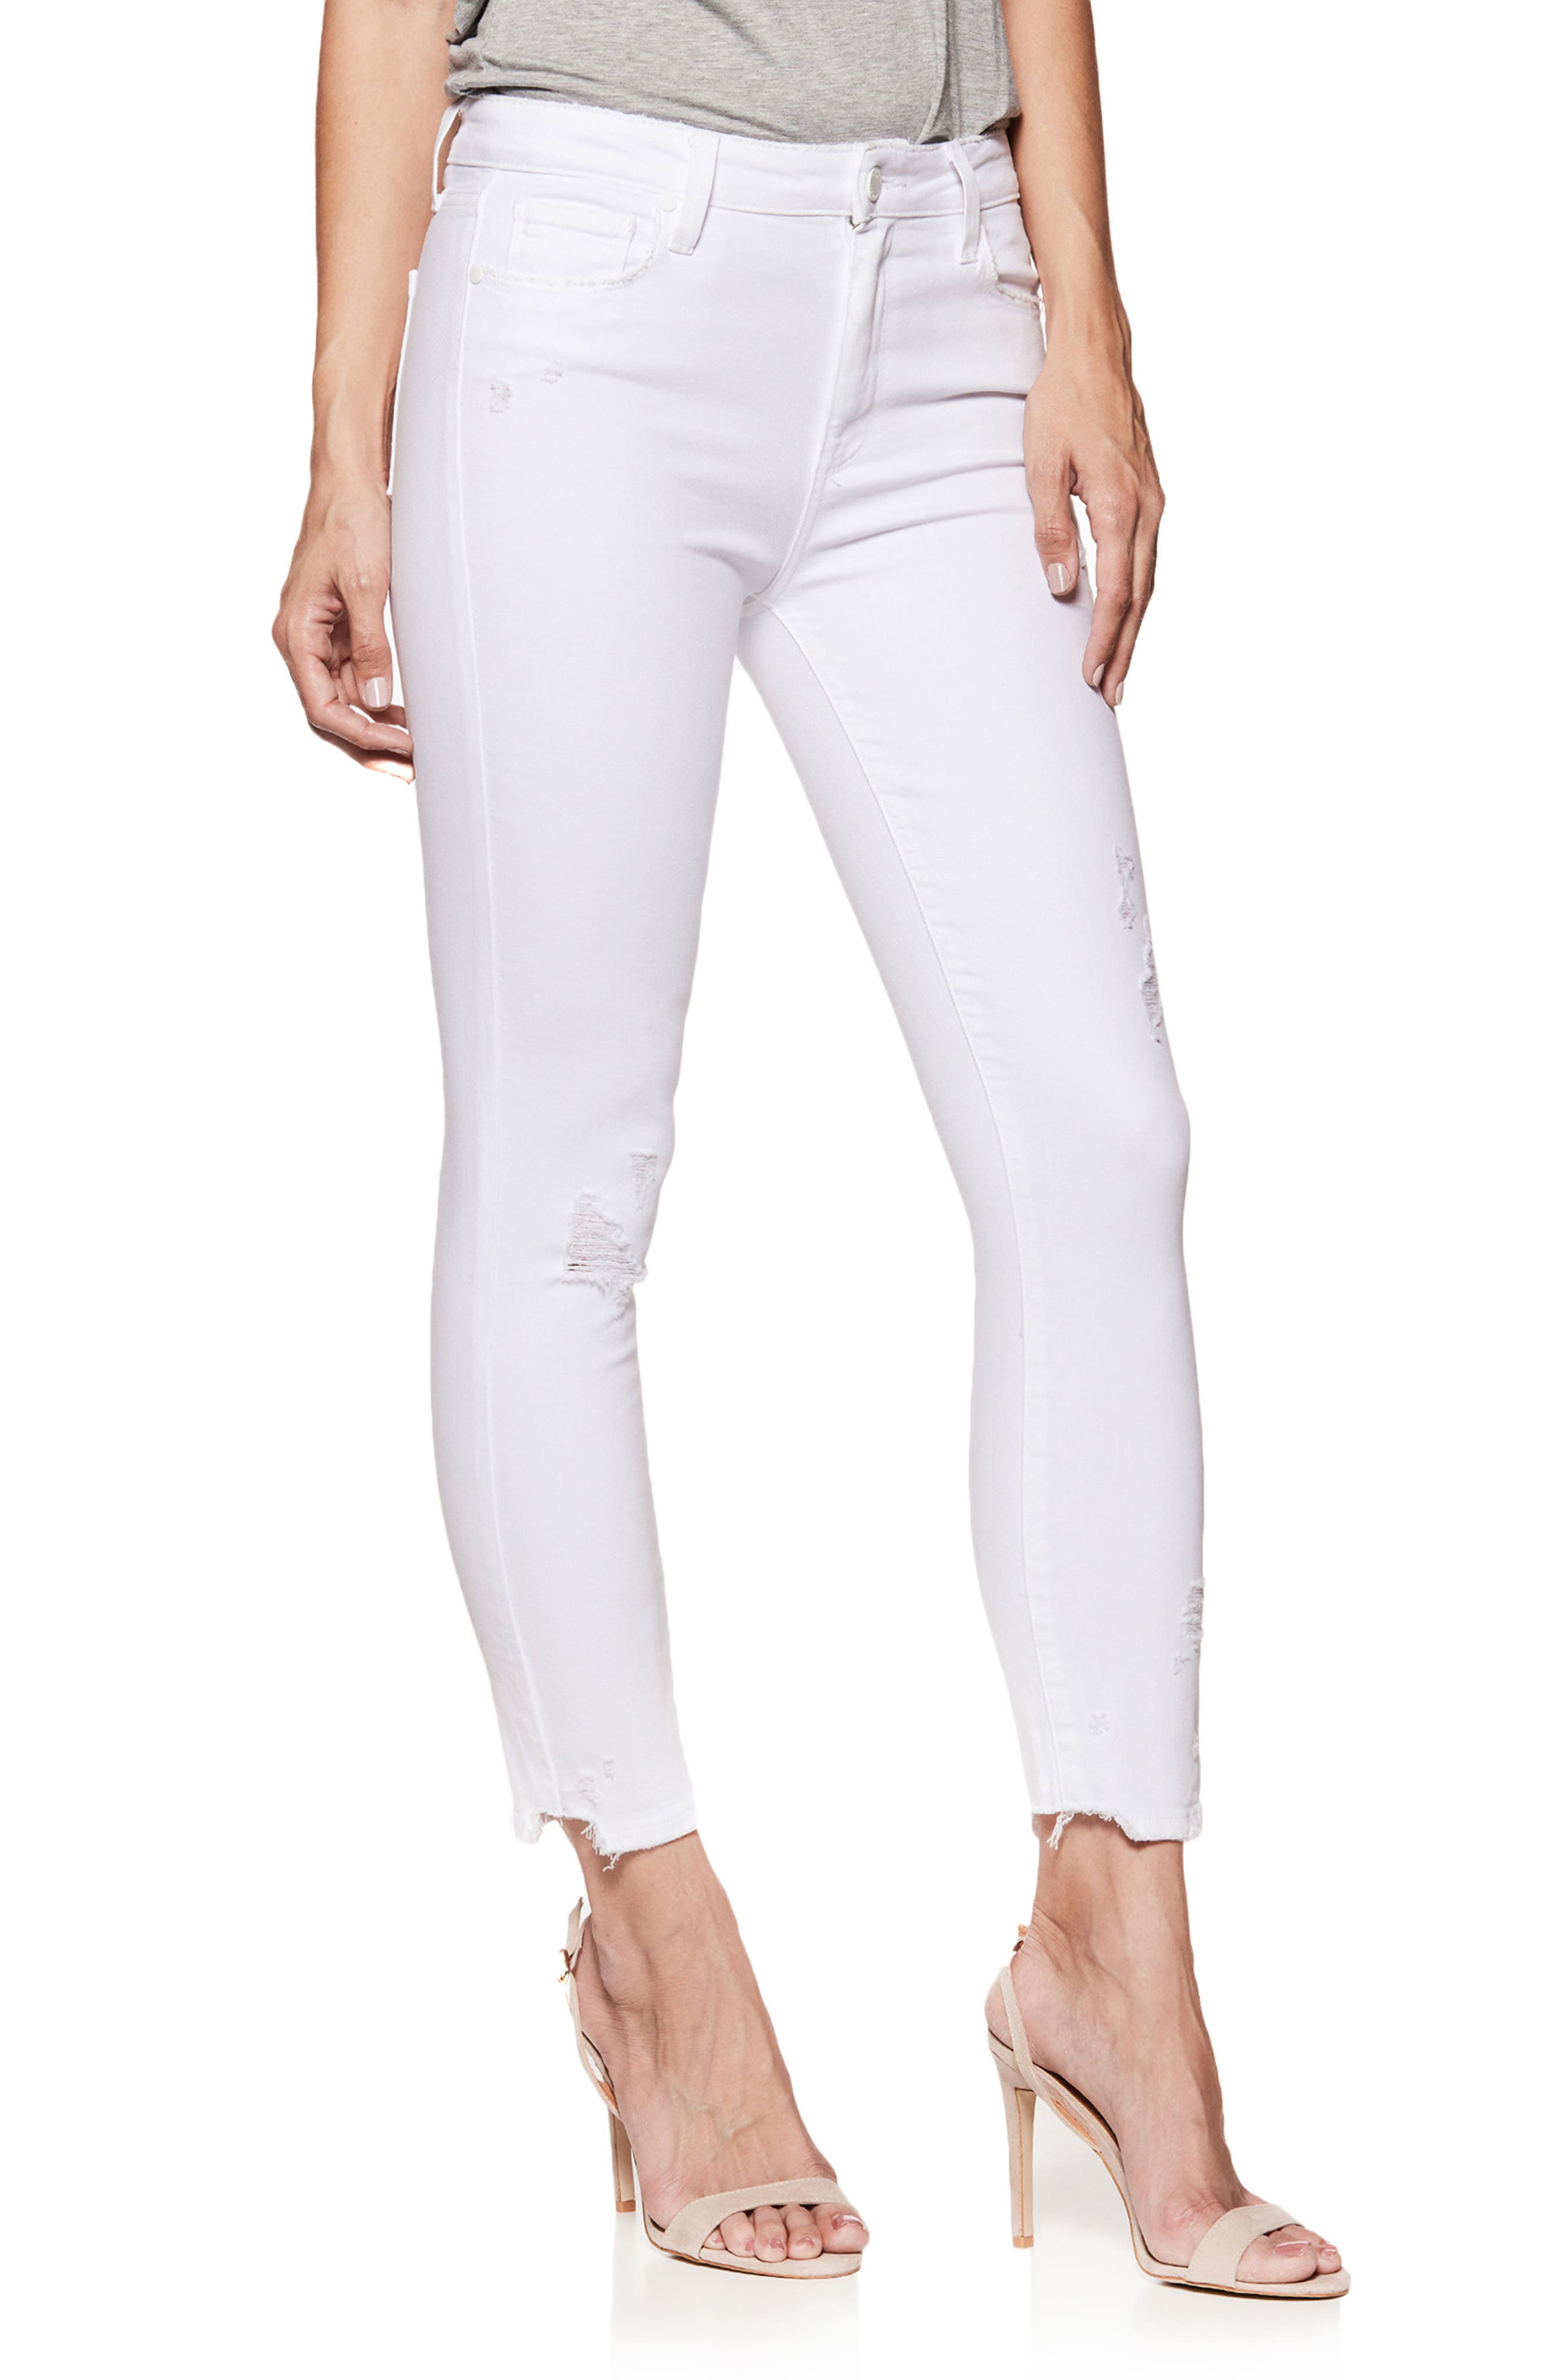 Hoxton High Waist Ankle Skinny Jeans,                             Main thumbnail 1, color,                             CRISP WHITE DESTRUCTED